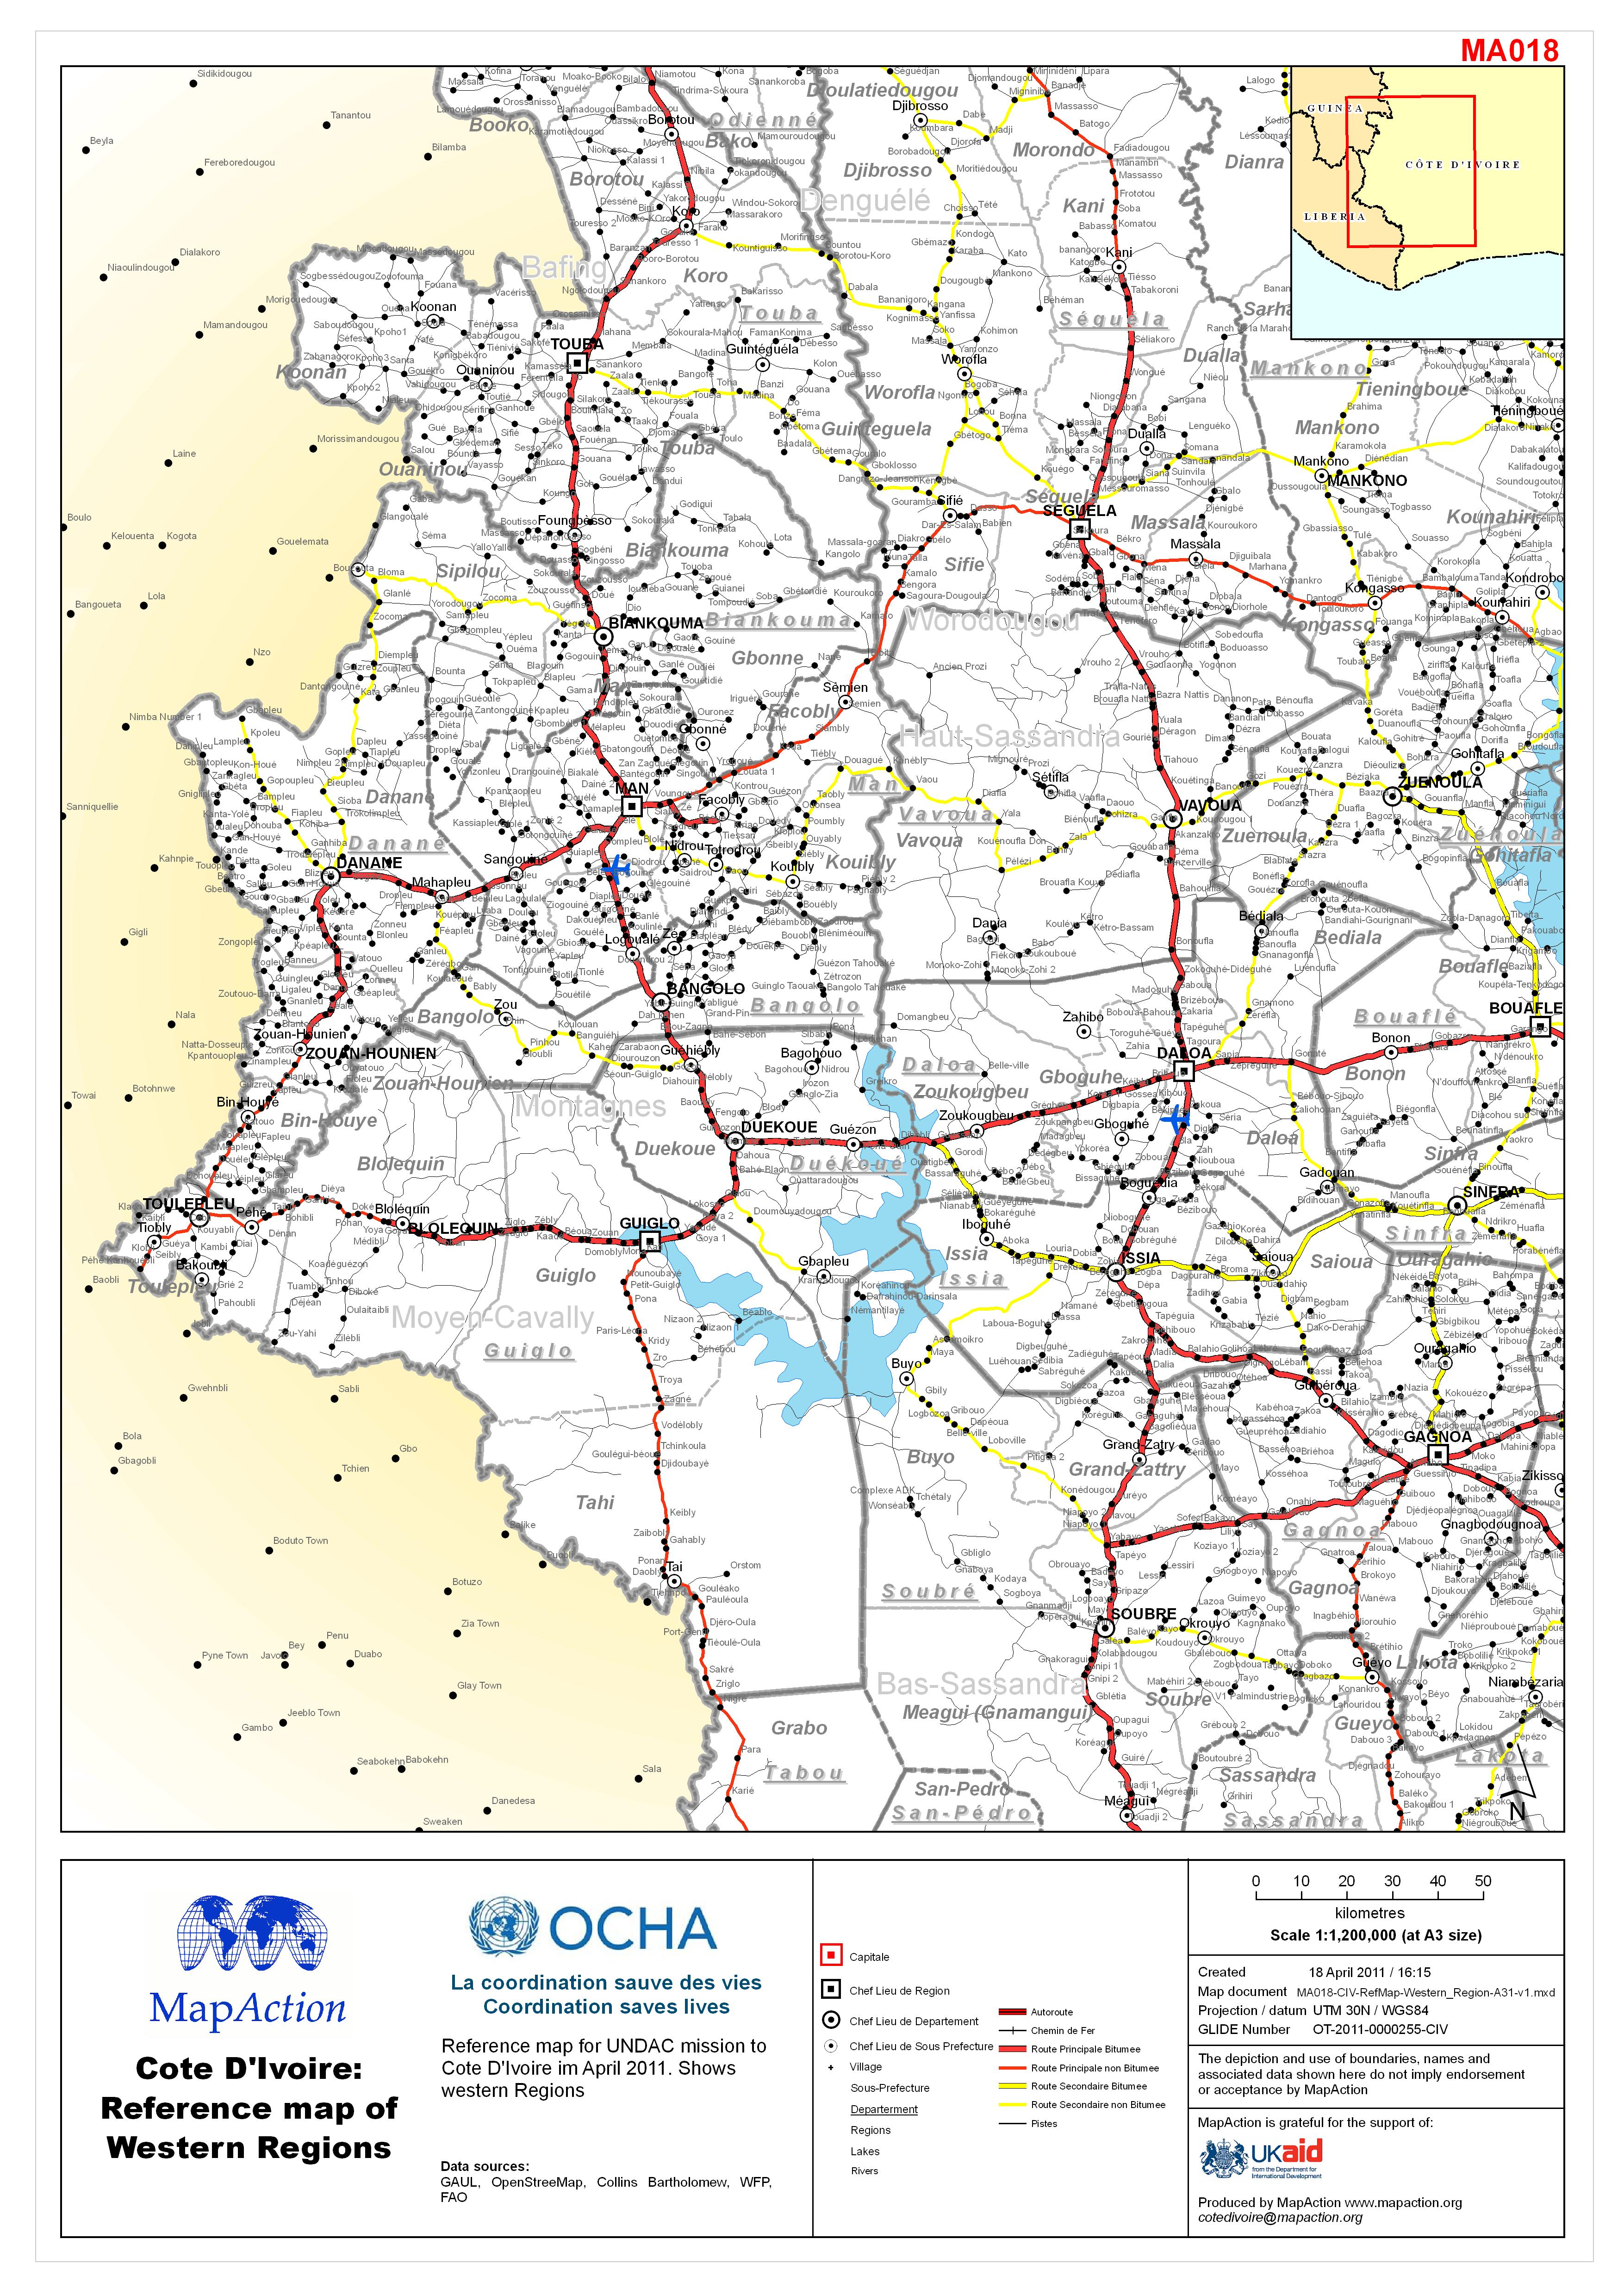 Côte d\'Ivoire: Reference map of Western Regions - Datasets ...